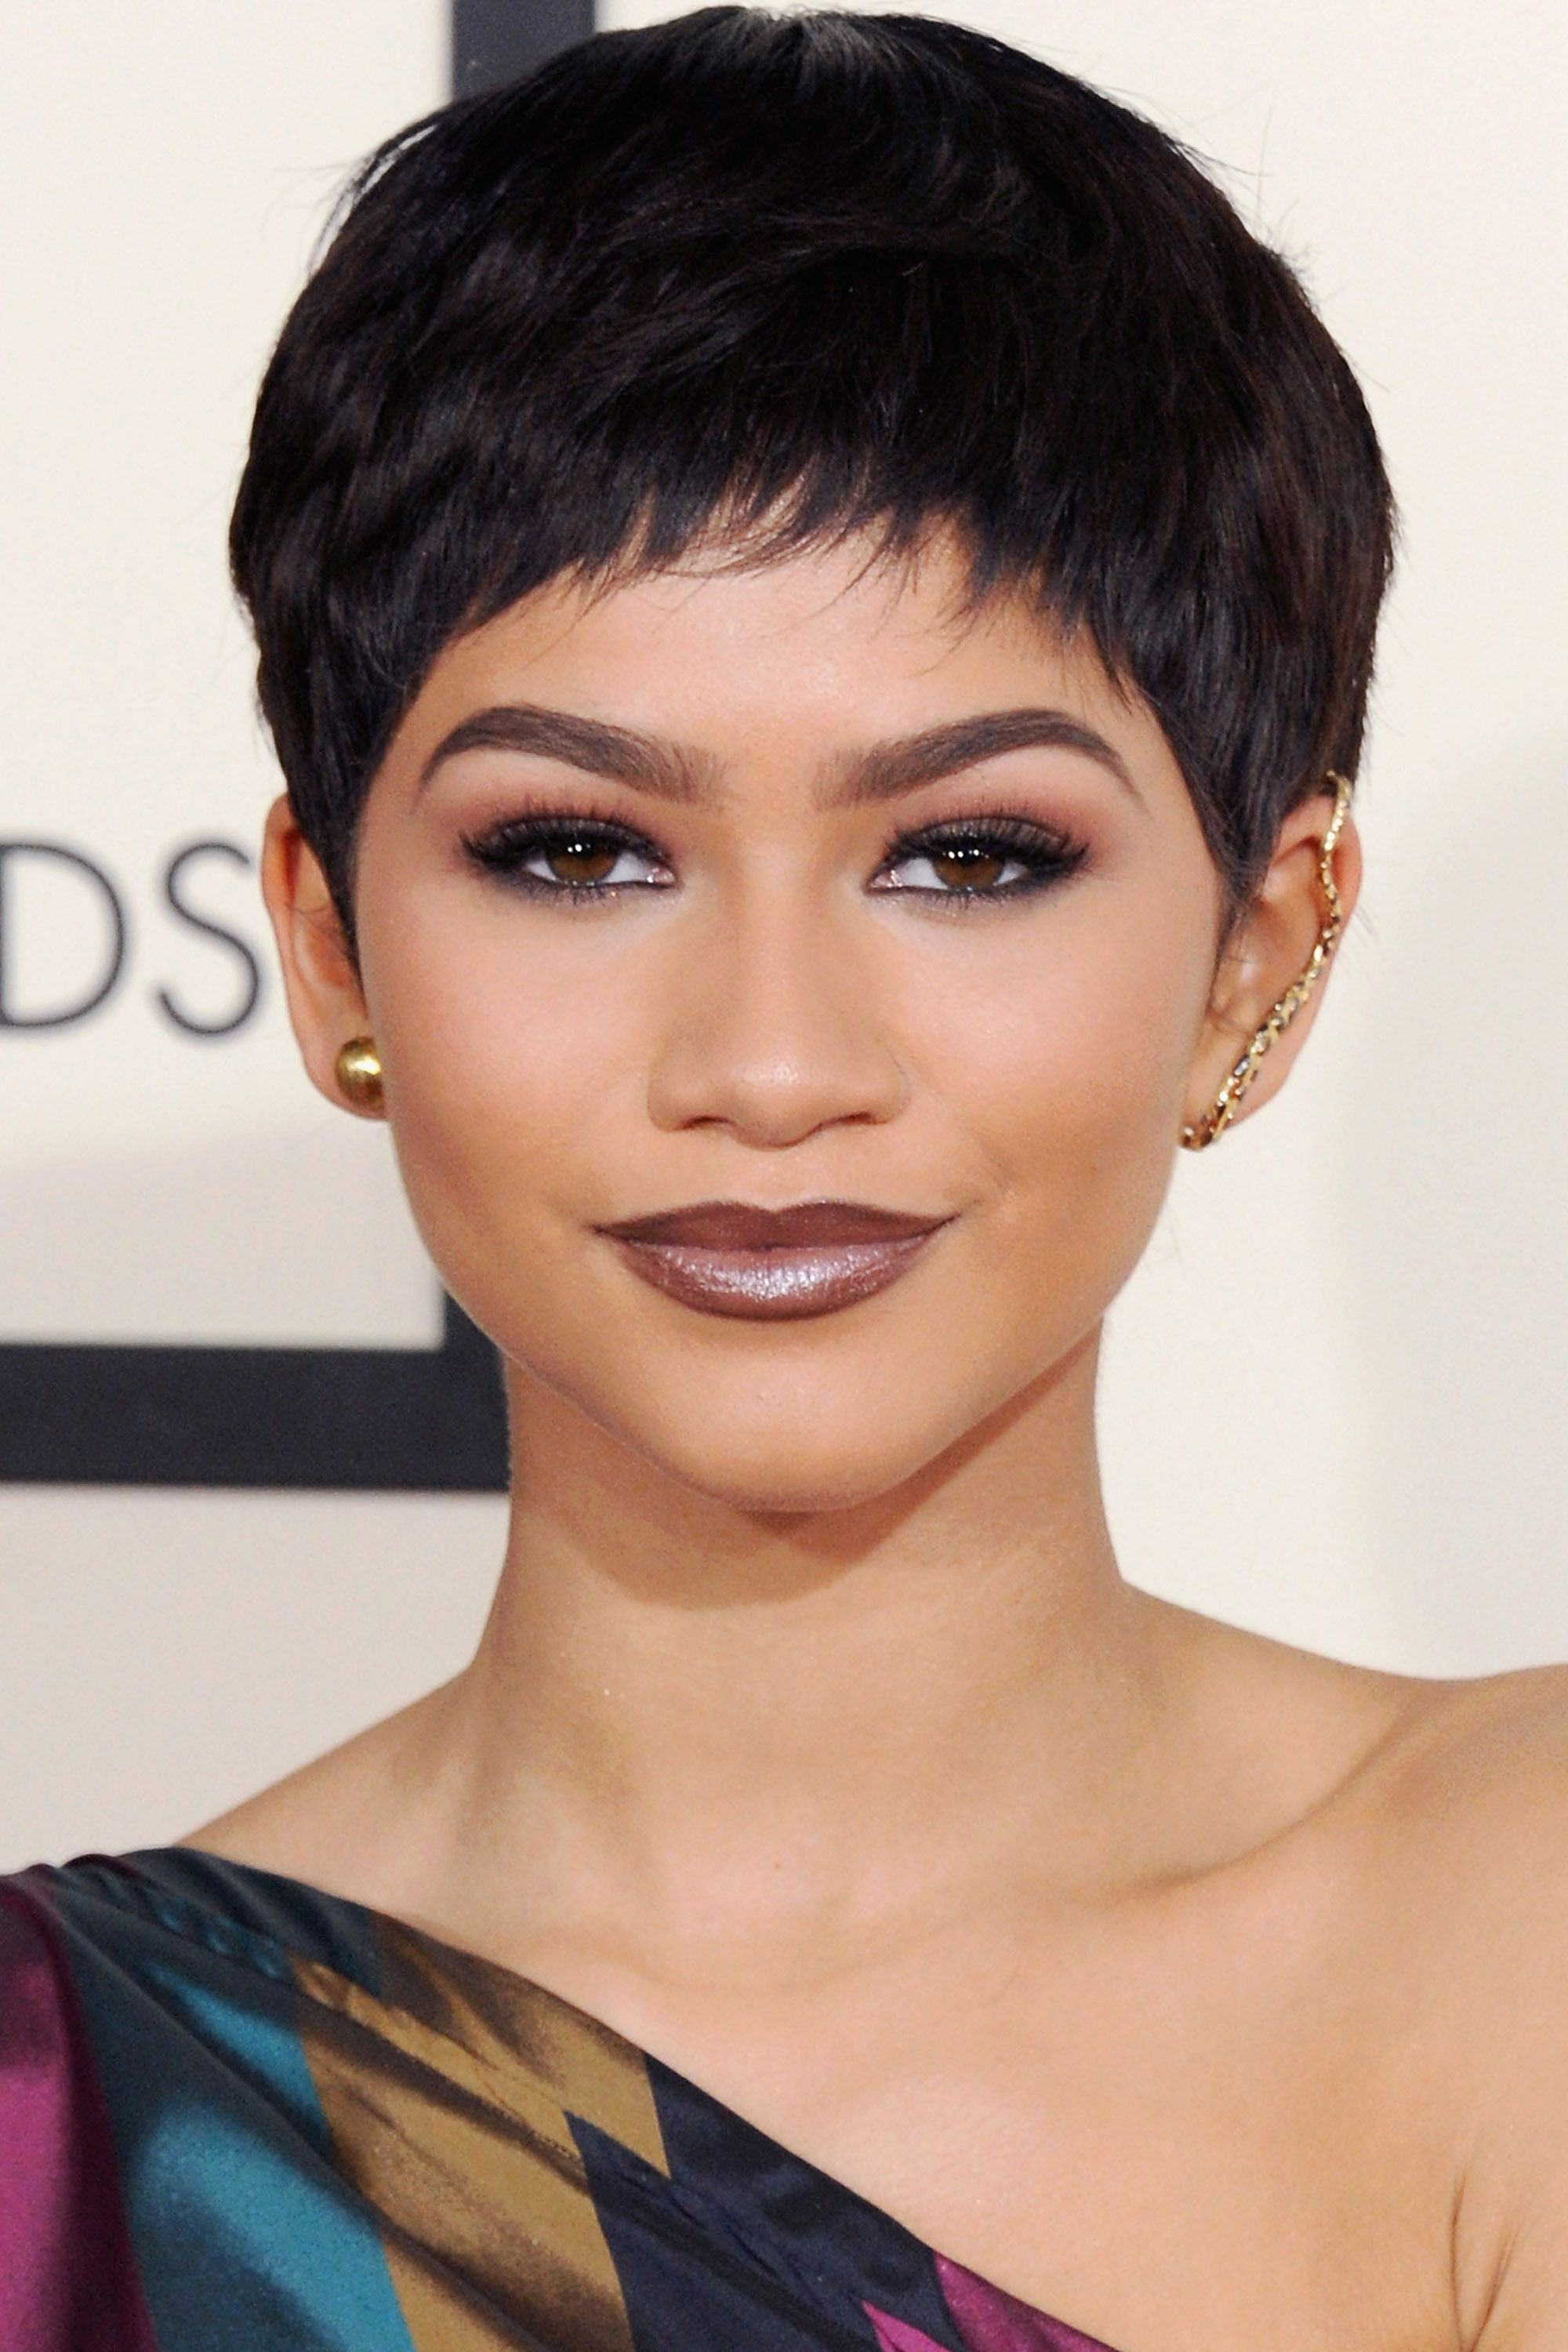 50+ Pixie Cuts We Love for 2019 - Short Pixie Hairstyles from